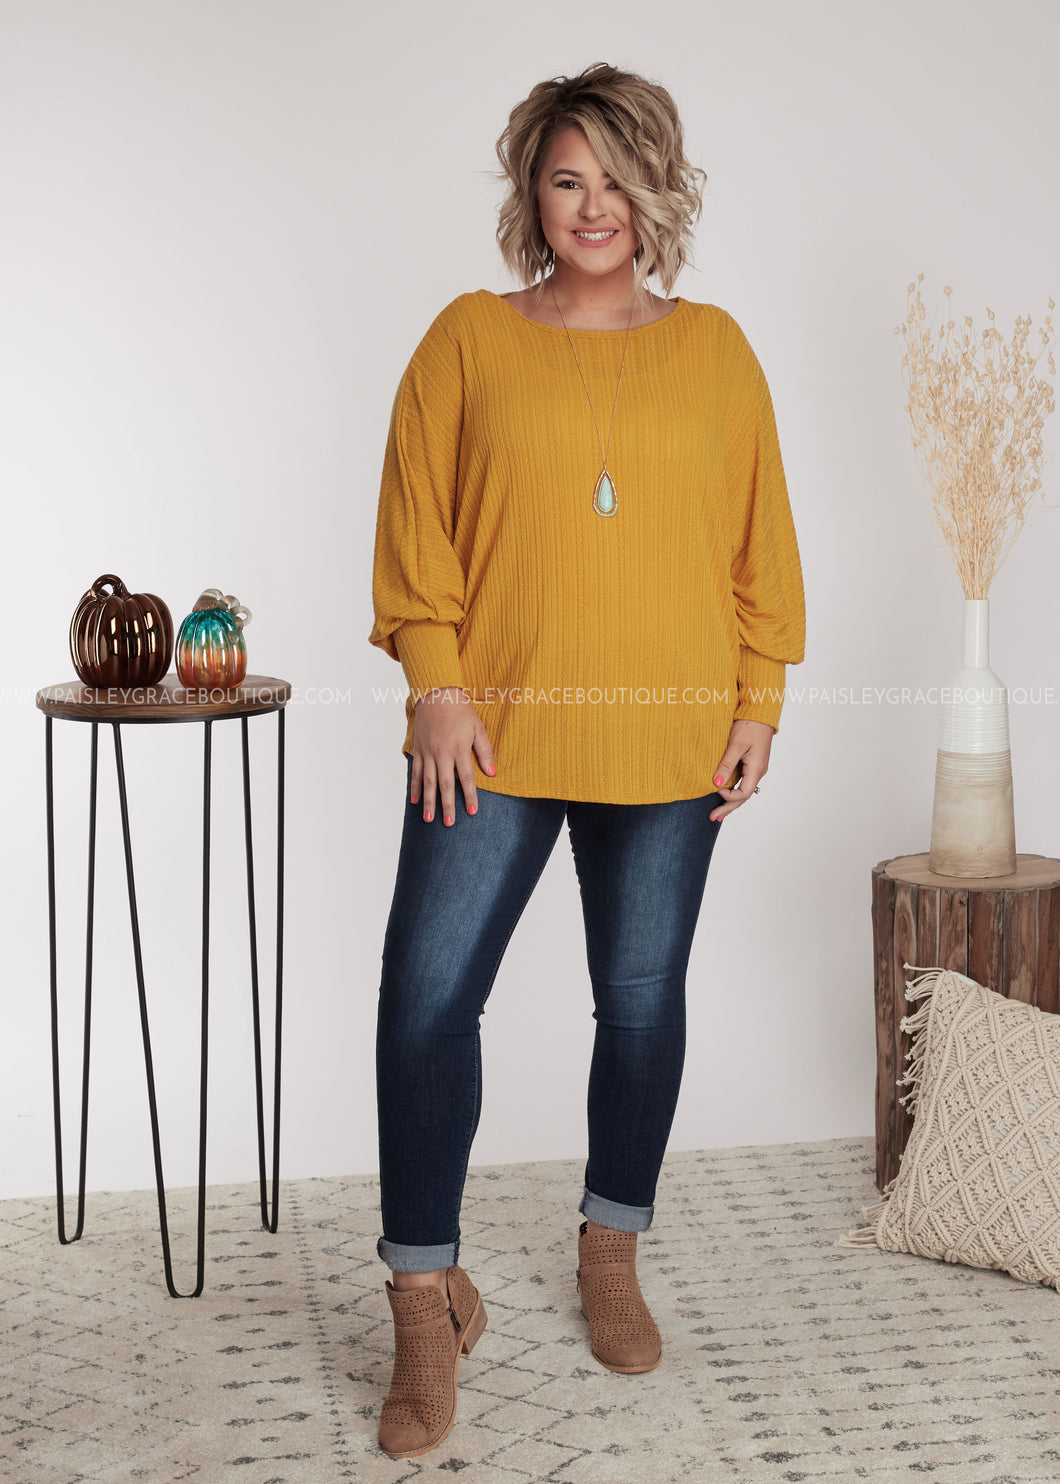 Wild Honey Top